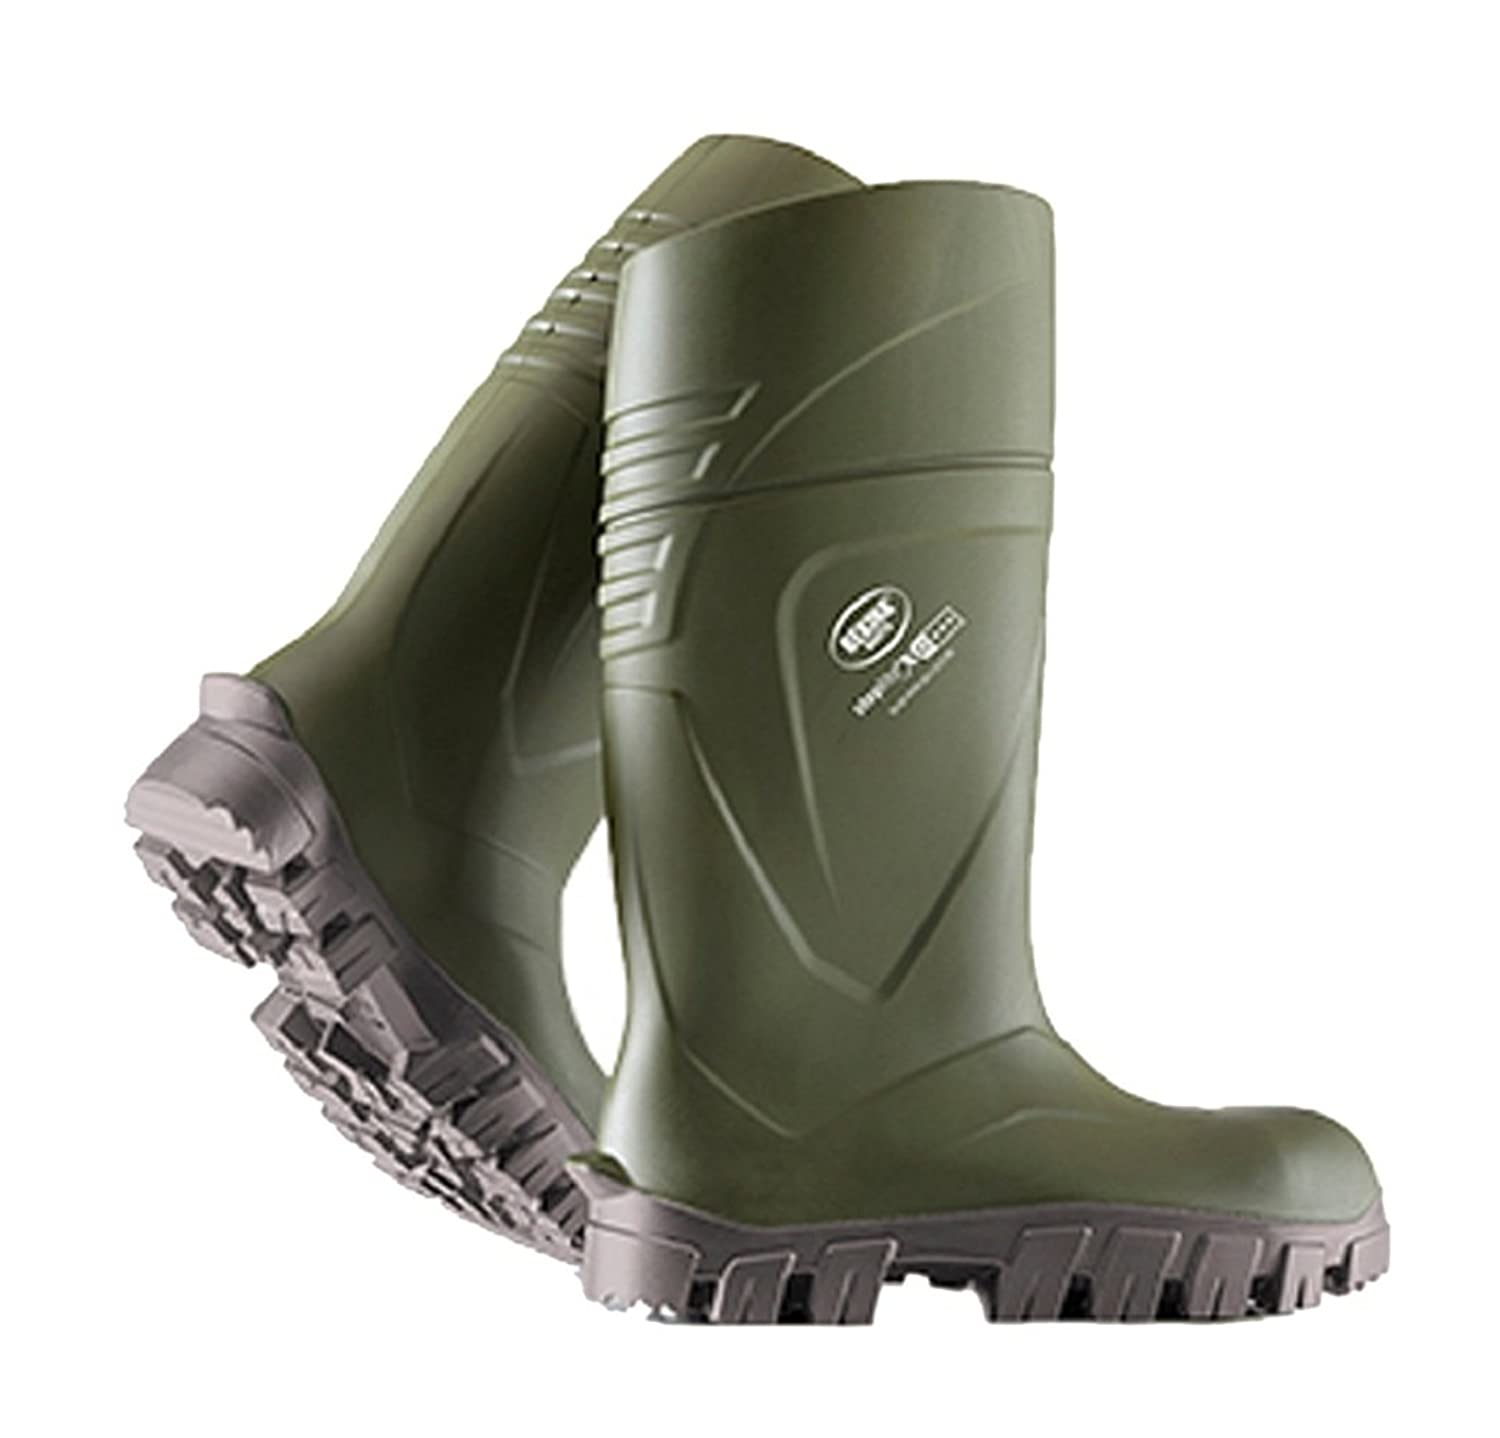 Dunlop Thermo Plus PU-Stiefel - Winterstiefel  Amazon.de  Schuhe ... 18761ca592